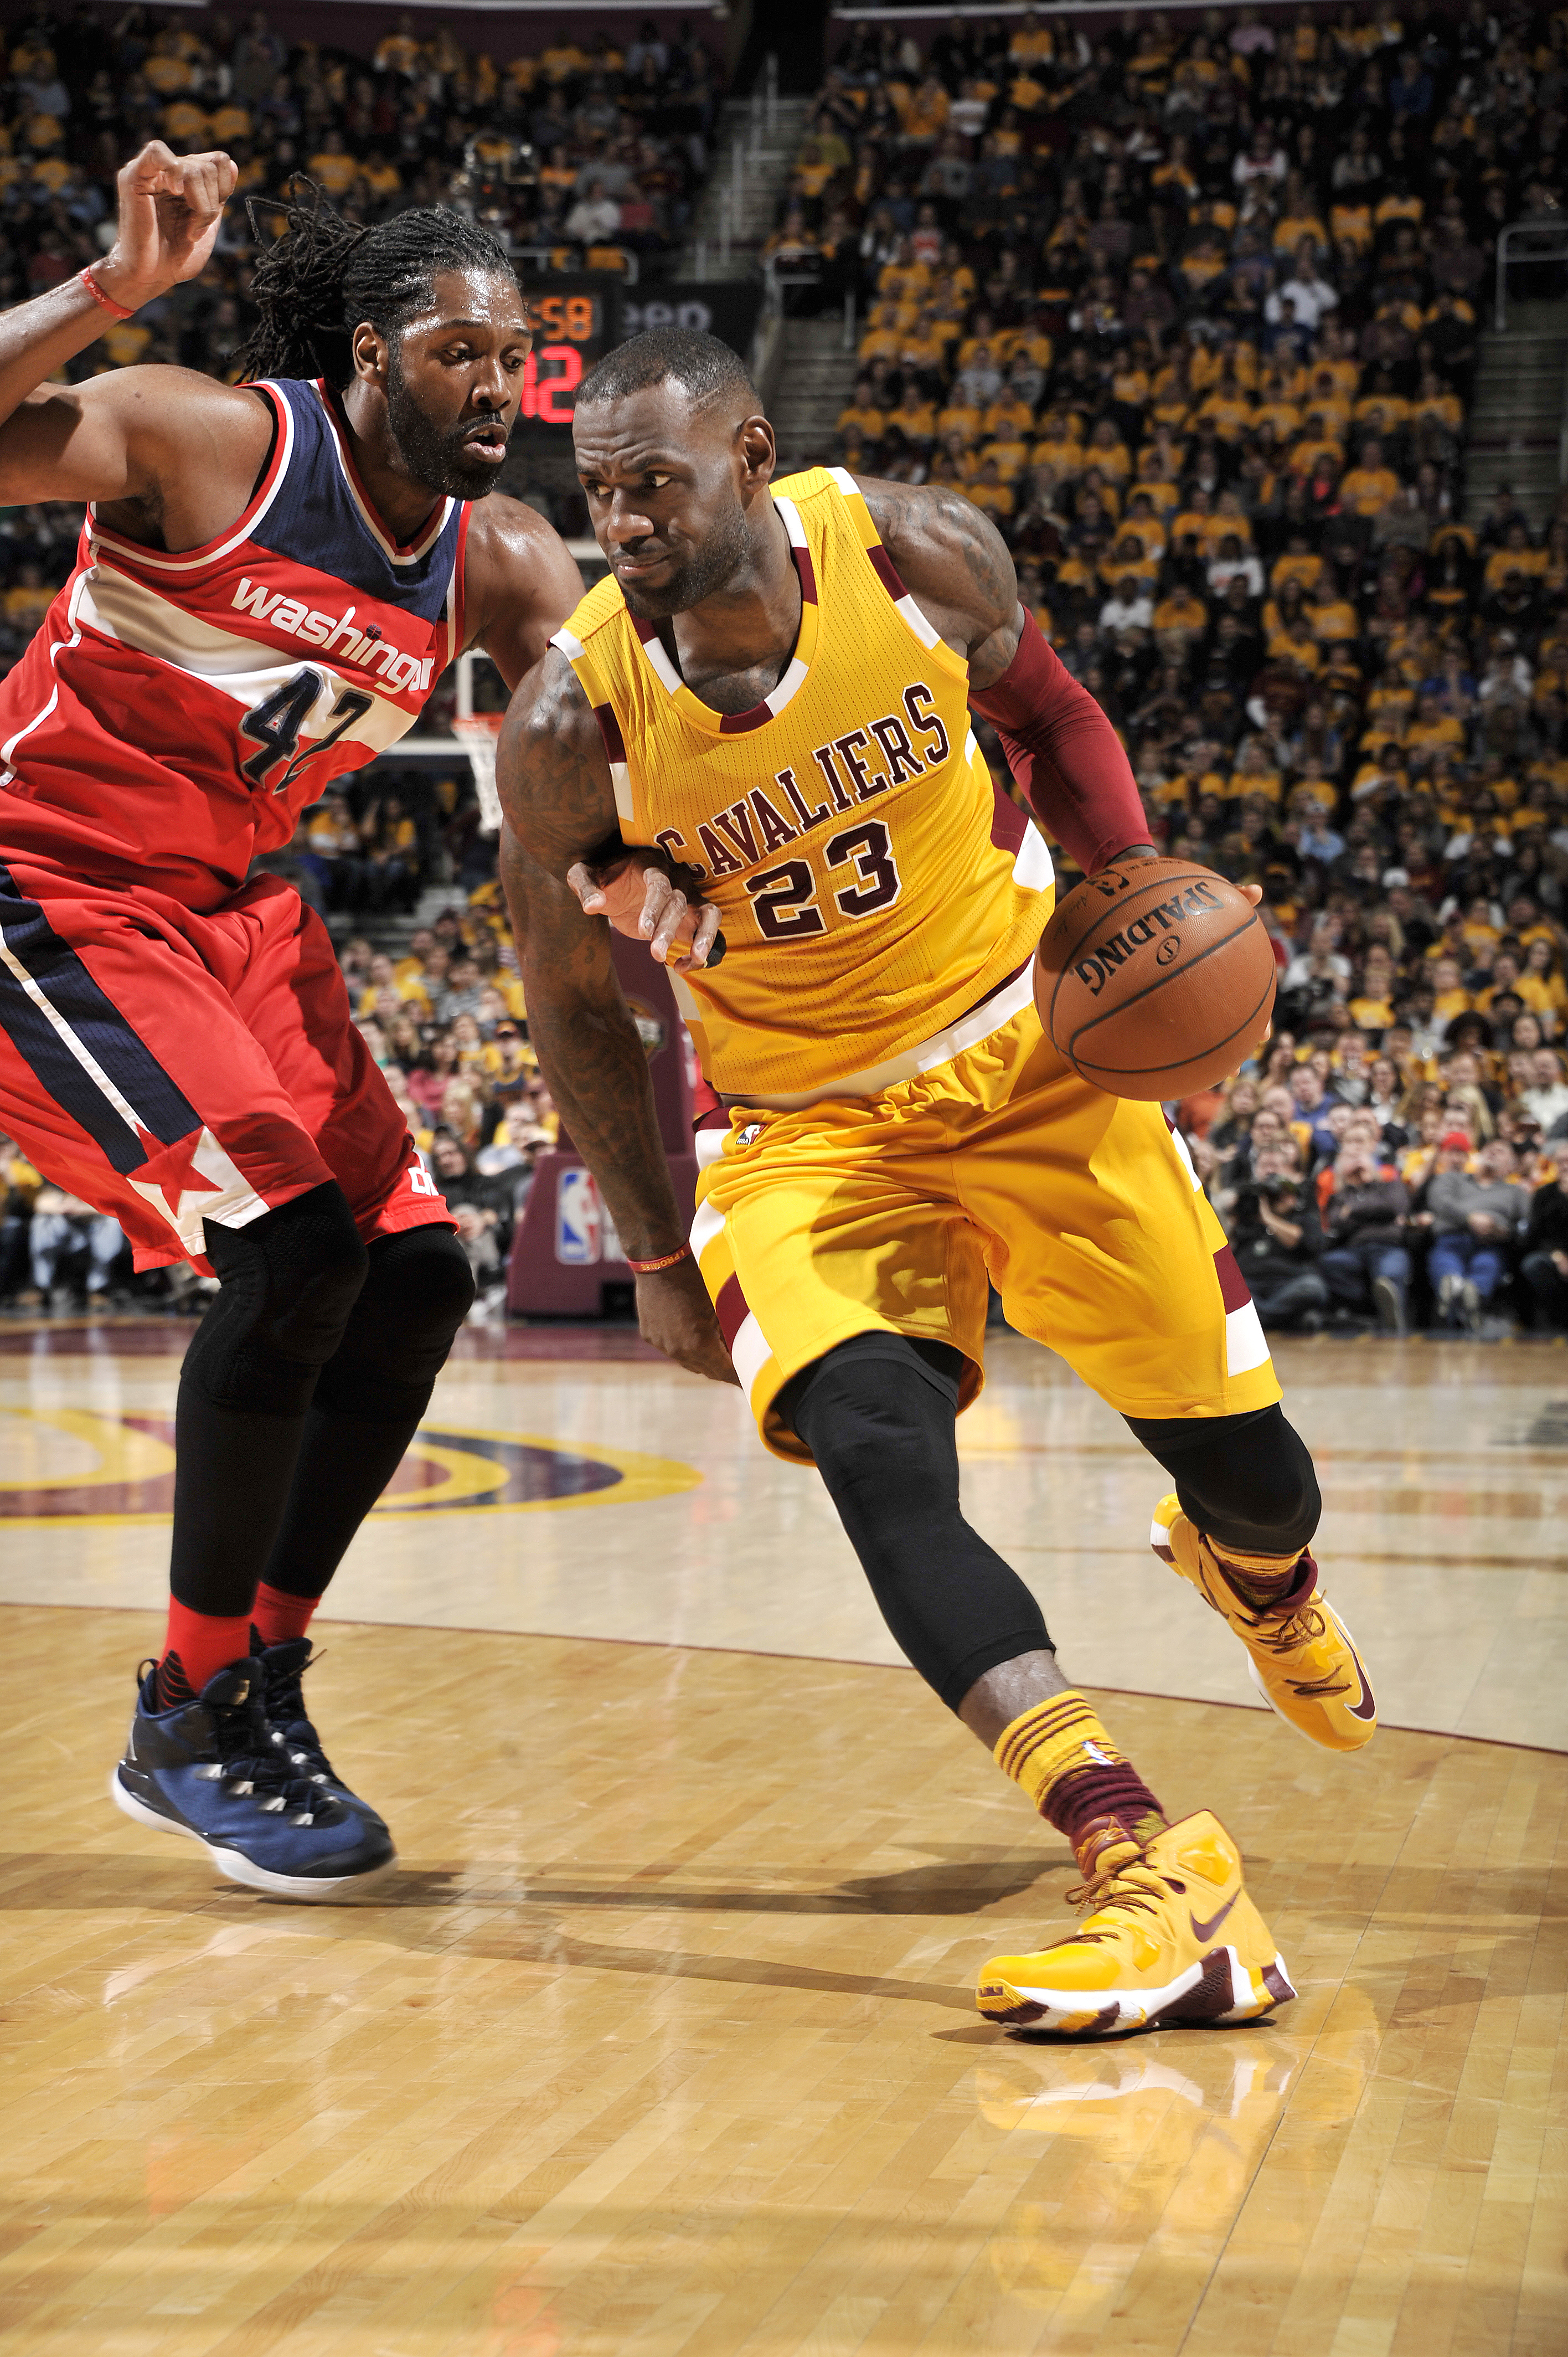 CLEVELAND, OH - MARCH 4: LeBron James #23 of the Cleveland Cavaliers handles the ball during the game against the Washington Wizards on March 4, 2016 at Quicken Loans Arena in Cleveland, Ohio.  (Photo by David Liam Kyle/NBAE via Getty Images)